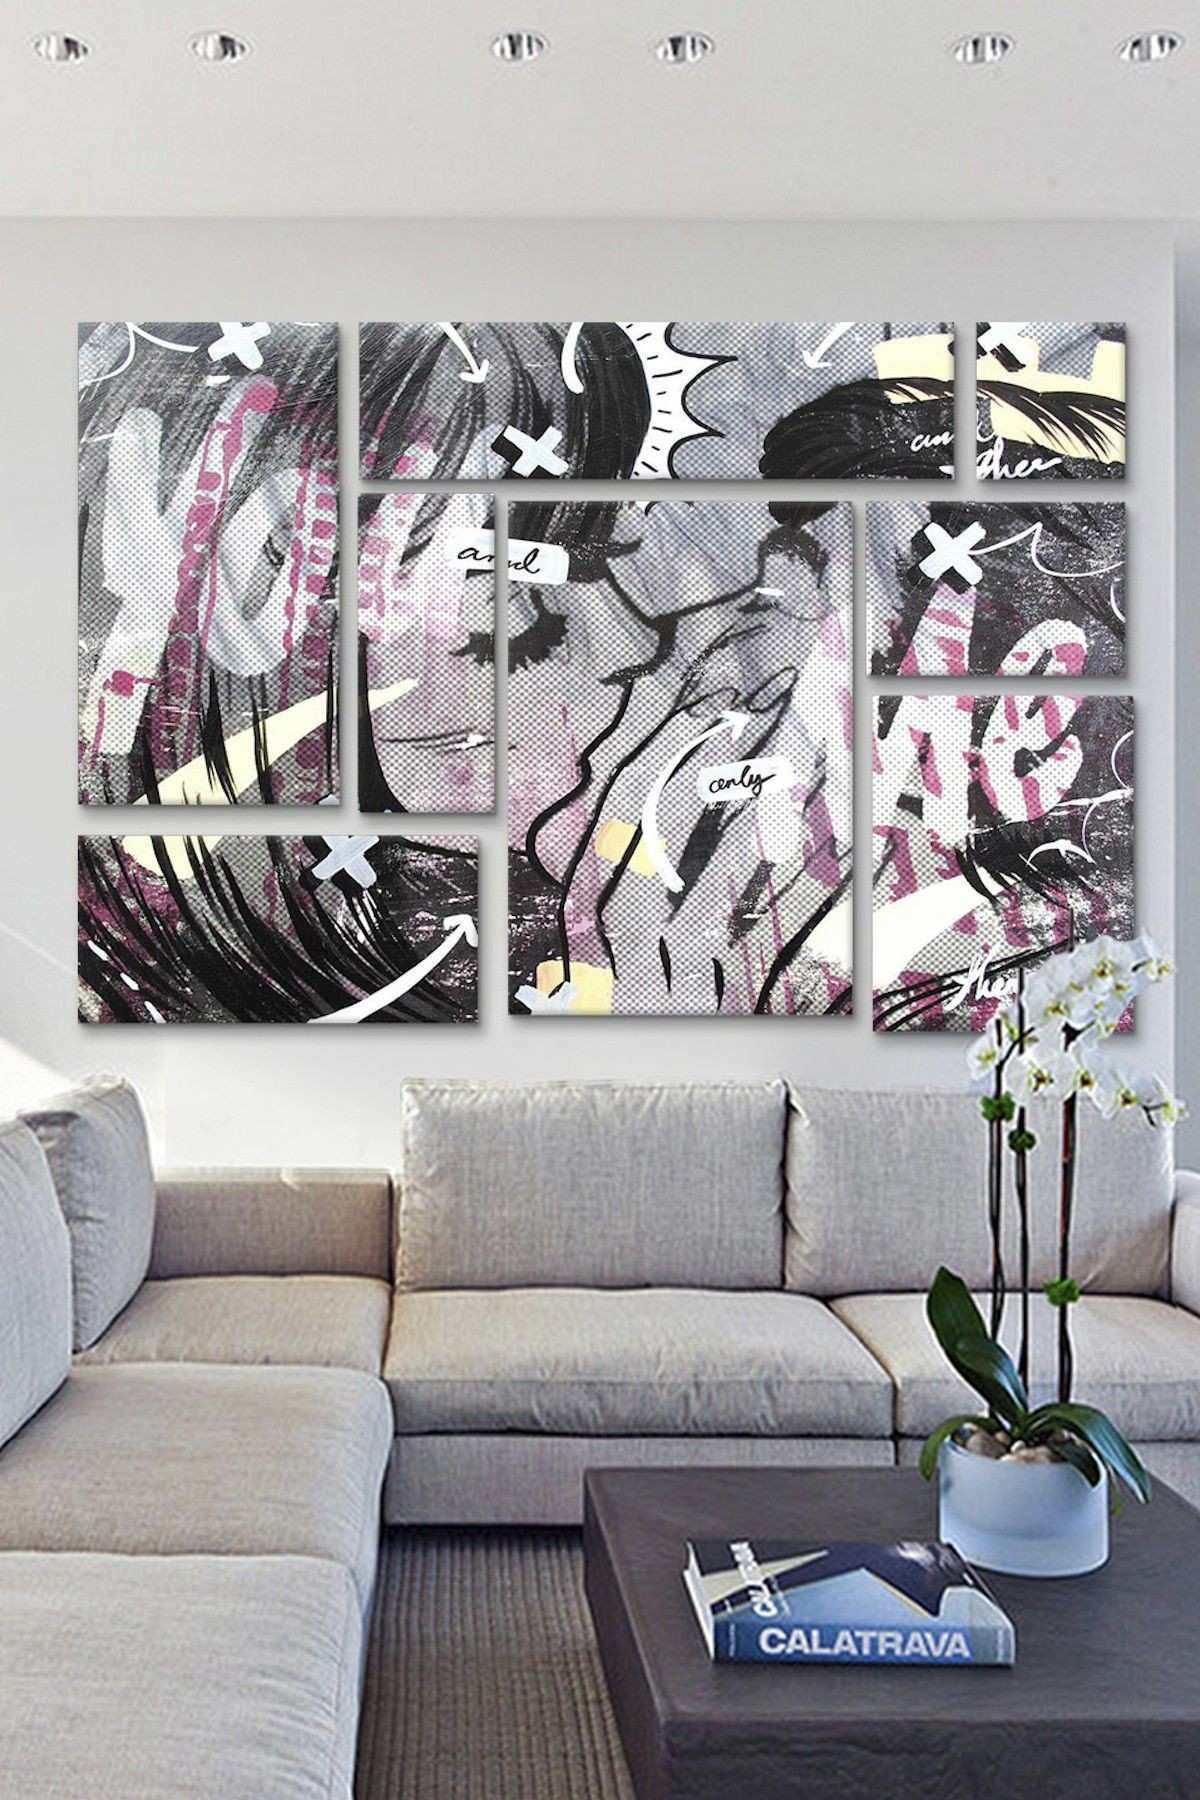 And ly 8 Panel Sectional Wall Art on HauteLook Art